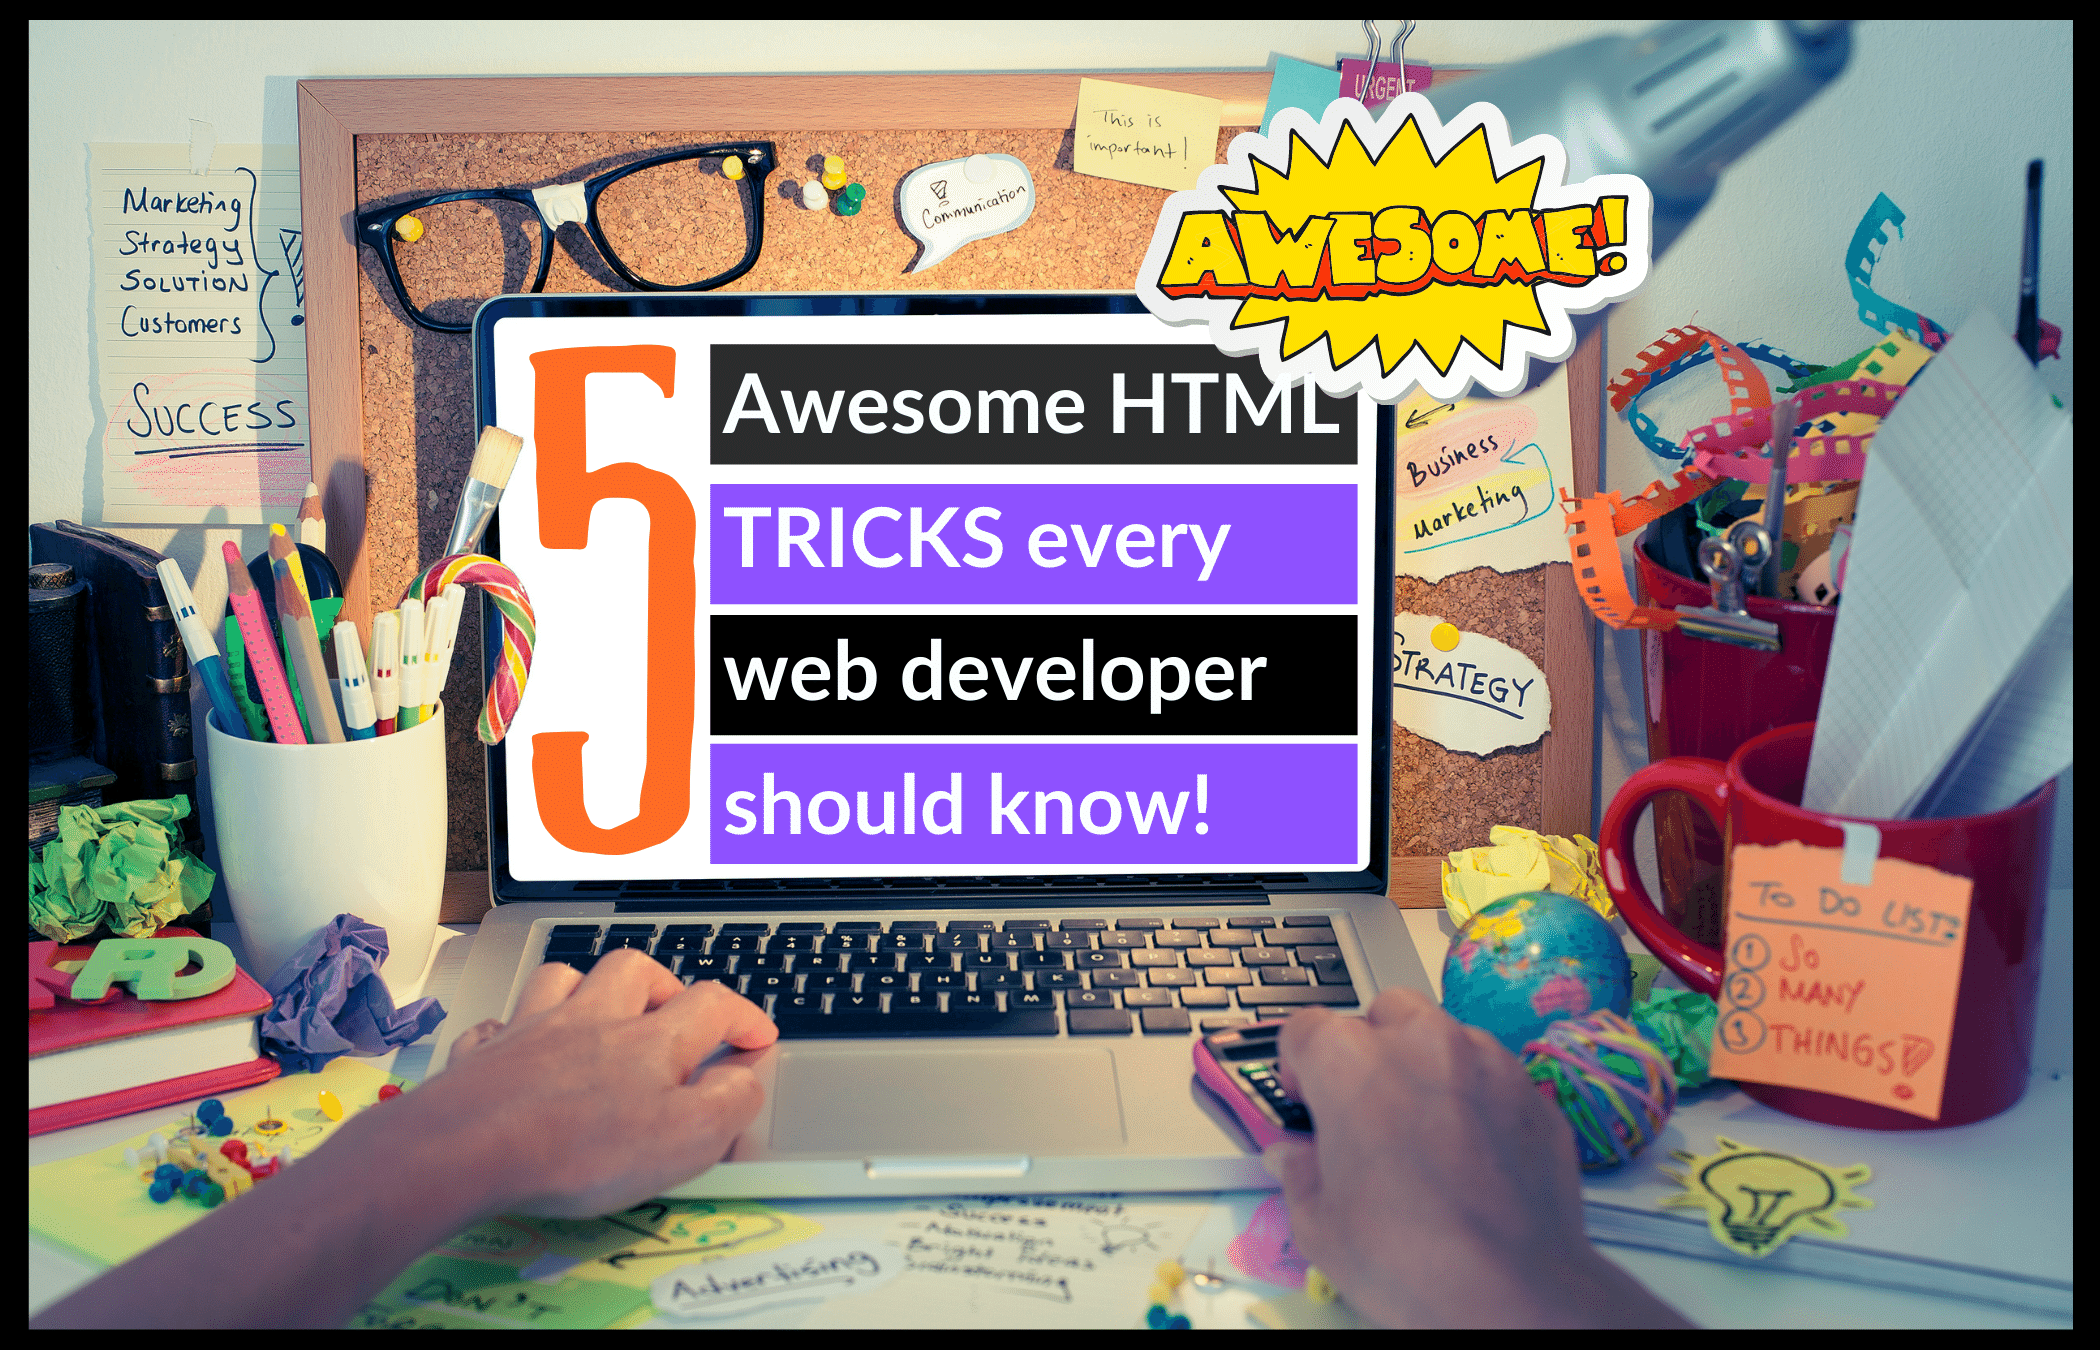 5 Awesome HTML tricks every web developer should know